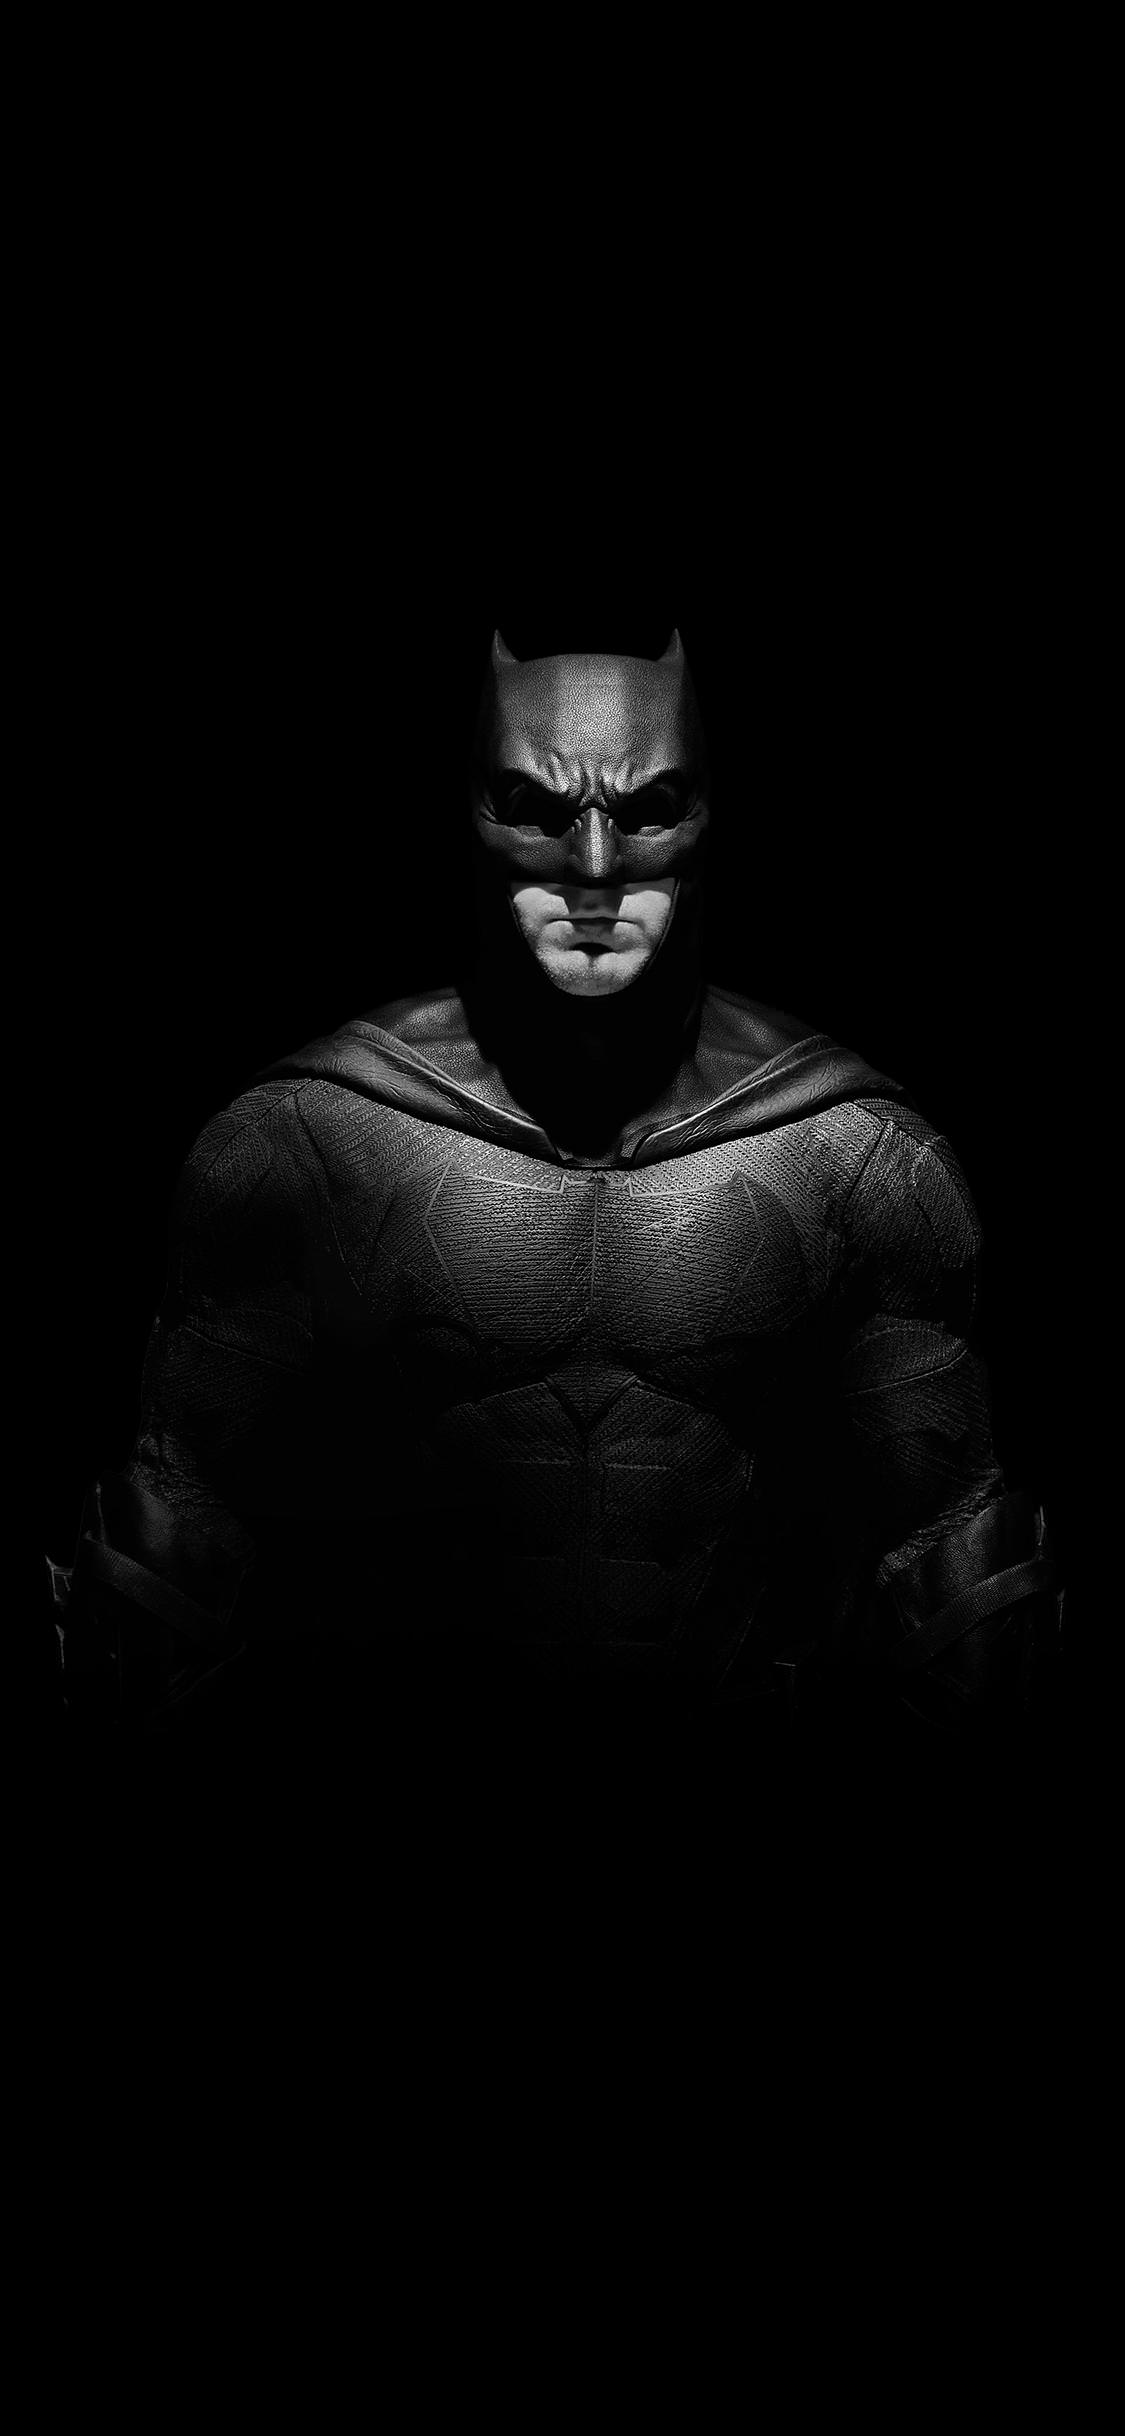 Black Batman Wallpaper : black, batman, wallpaper, Amoled, Black, Batman, Wallpapers, Wallpaper